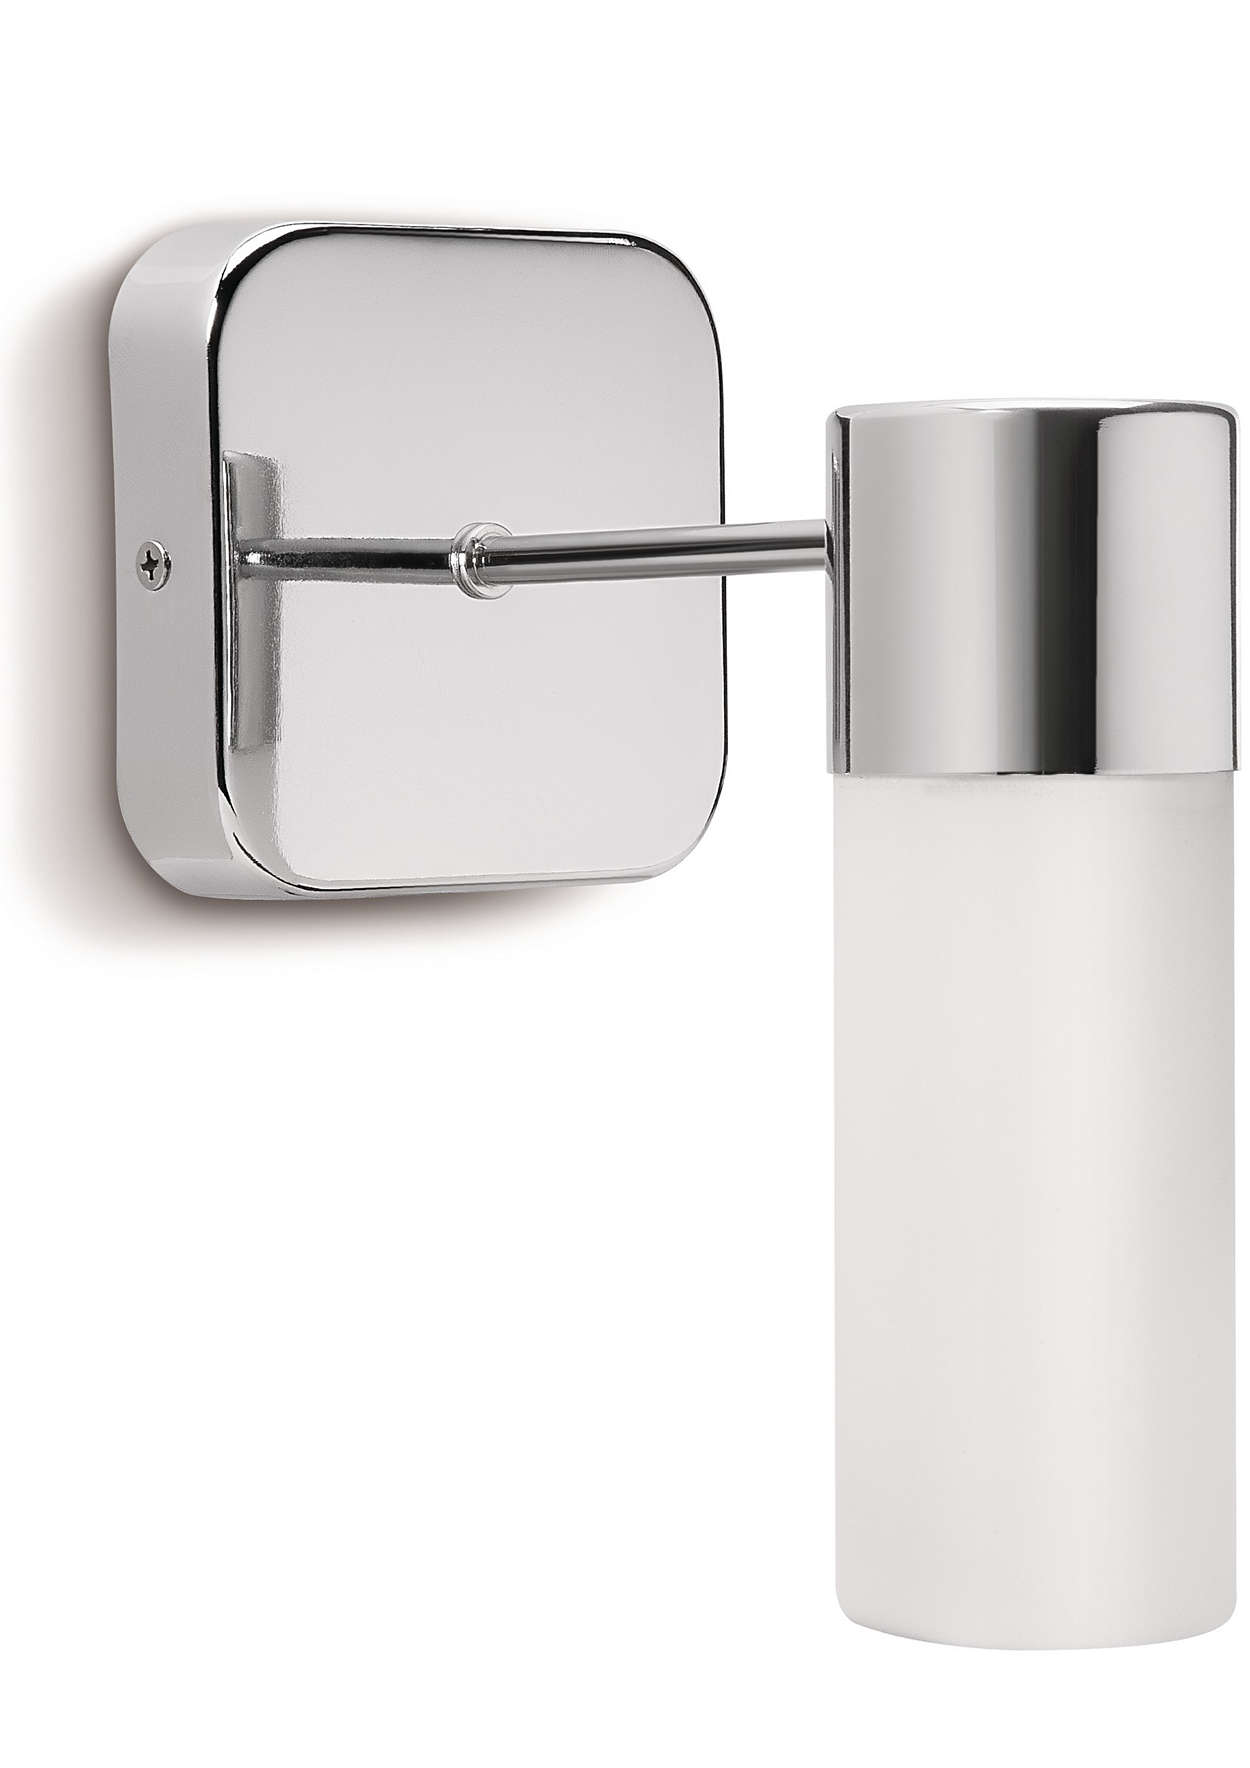 Spot light 320471166 philips for Turn your bathroom into a spa